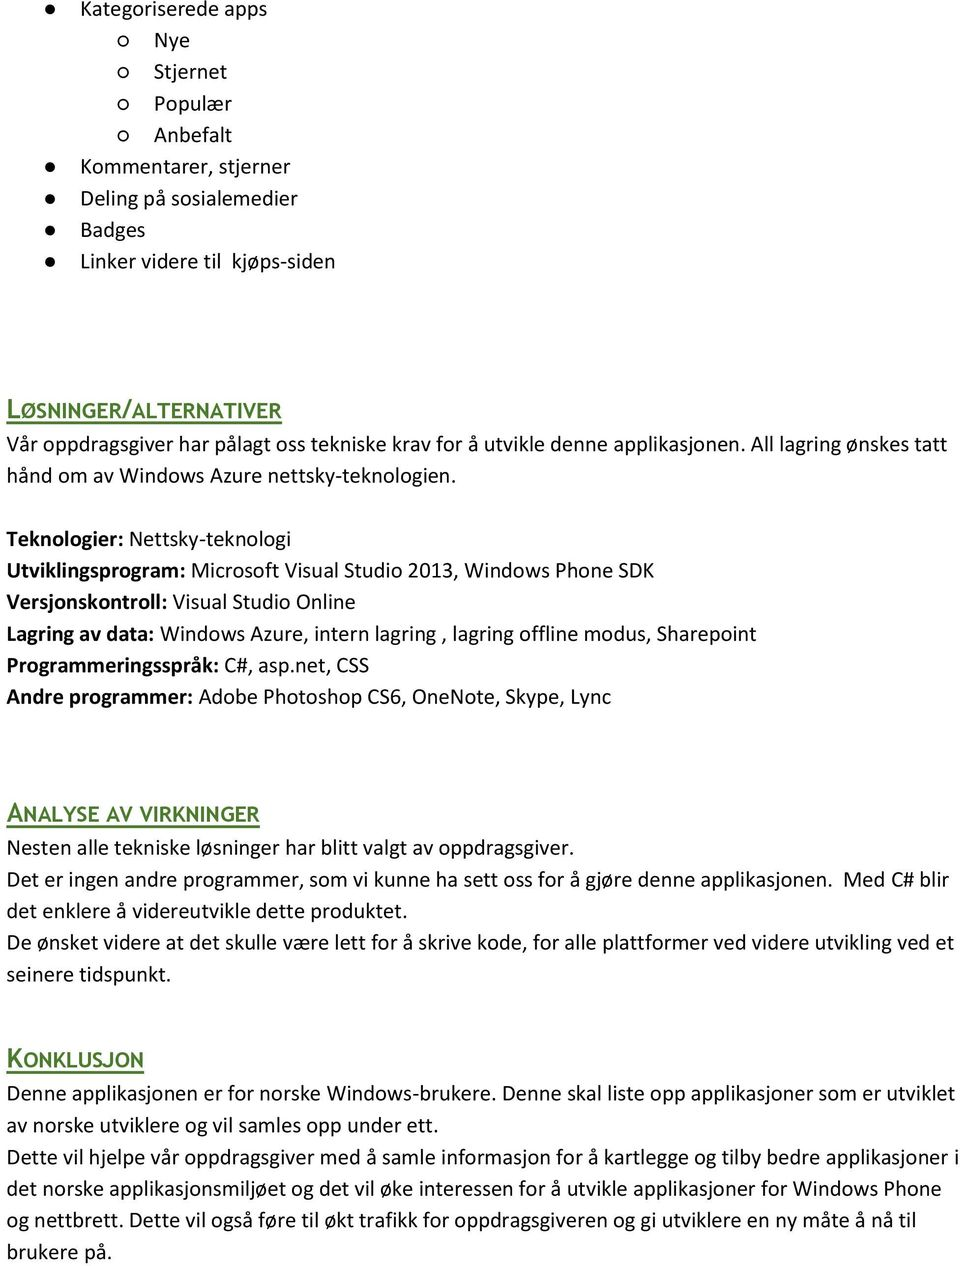 Teknologier: Nettsky-teknologi Utviklingsprogram: Microsoft Visual Studio 2013, Windows Phone SDK Versjonskontroll: Visual Studio Online Lagring av data: Windows Azure, intern lagring, lagring